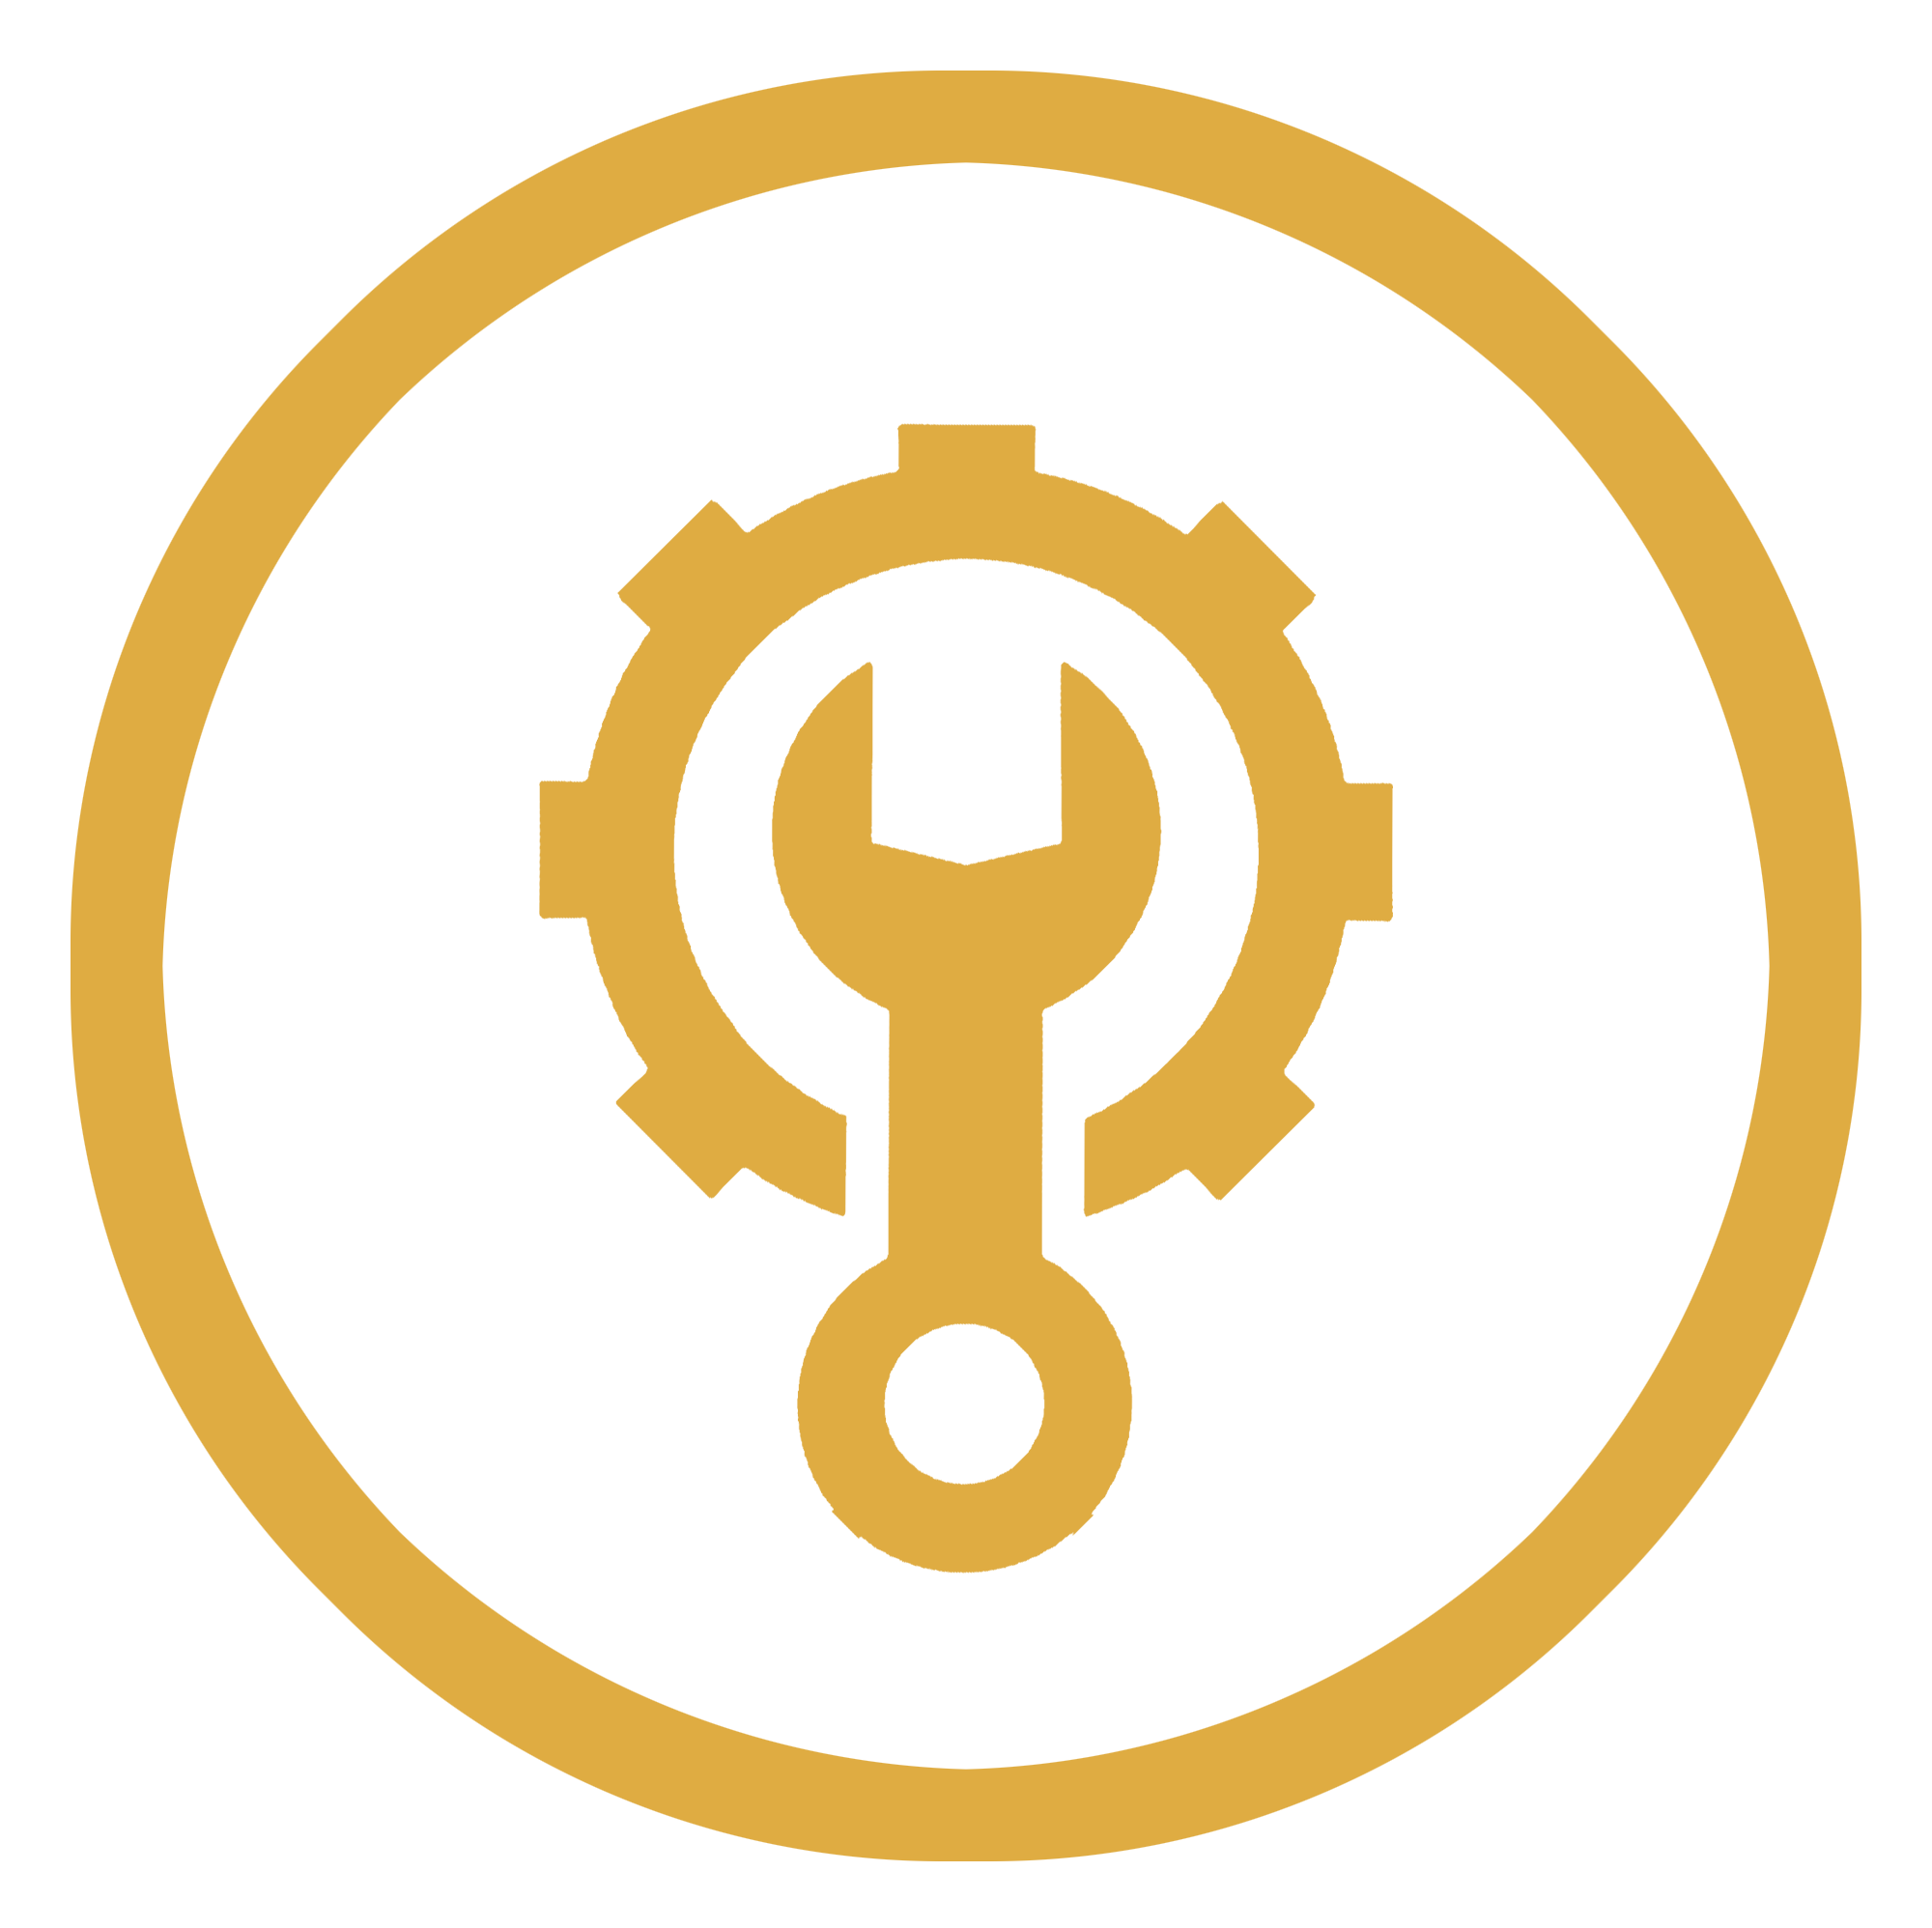 ICON-INFRA_1_B.png